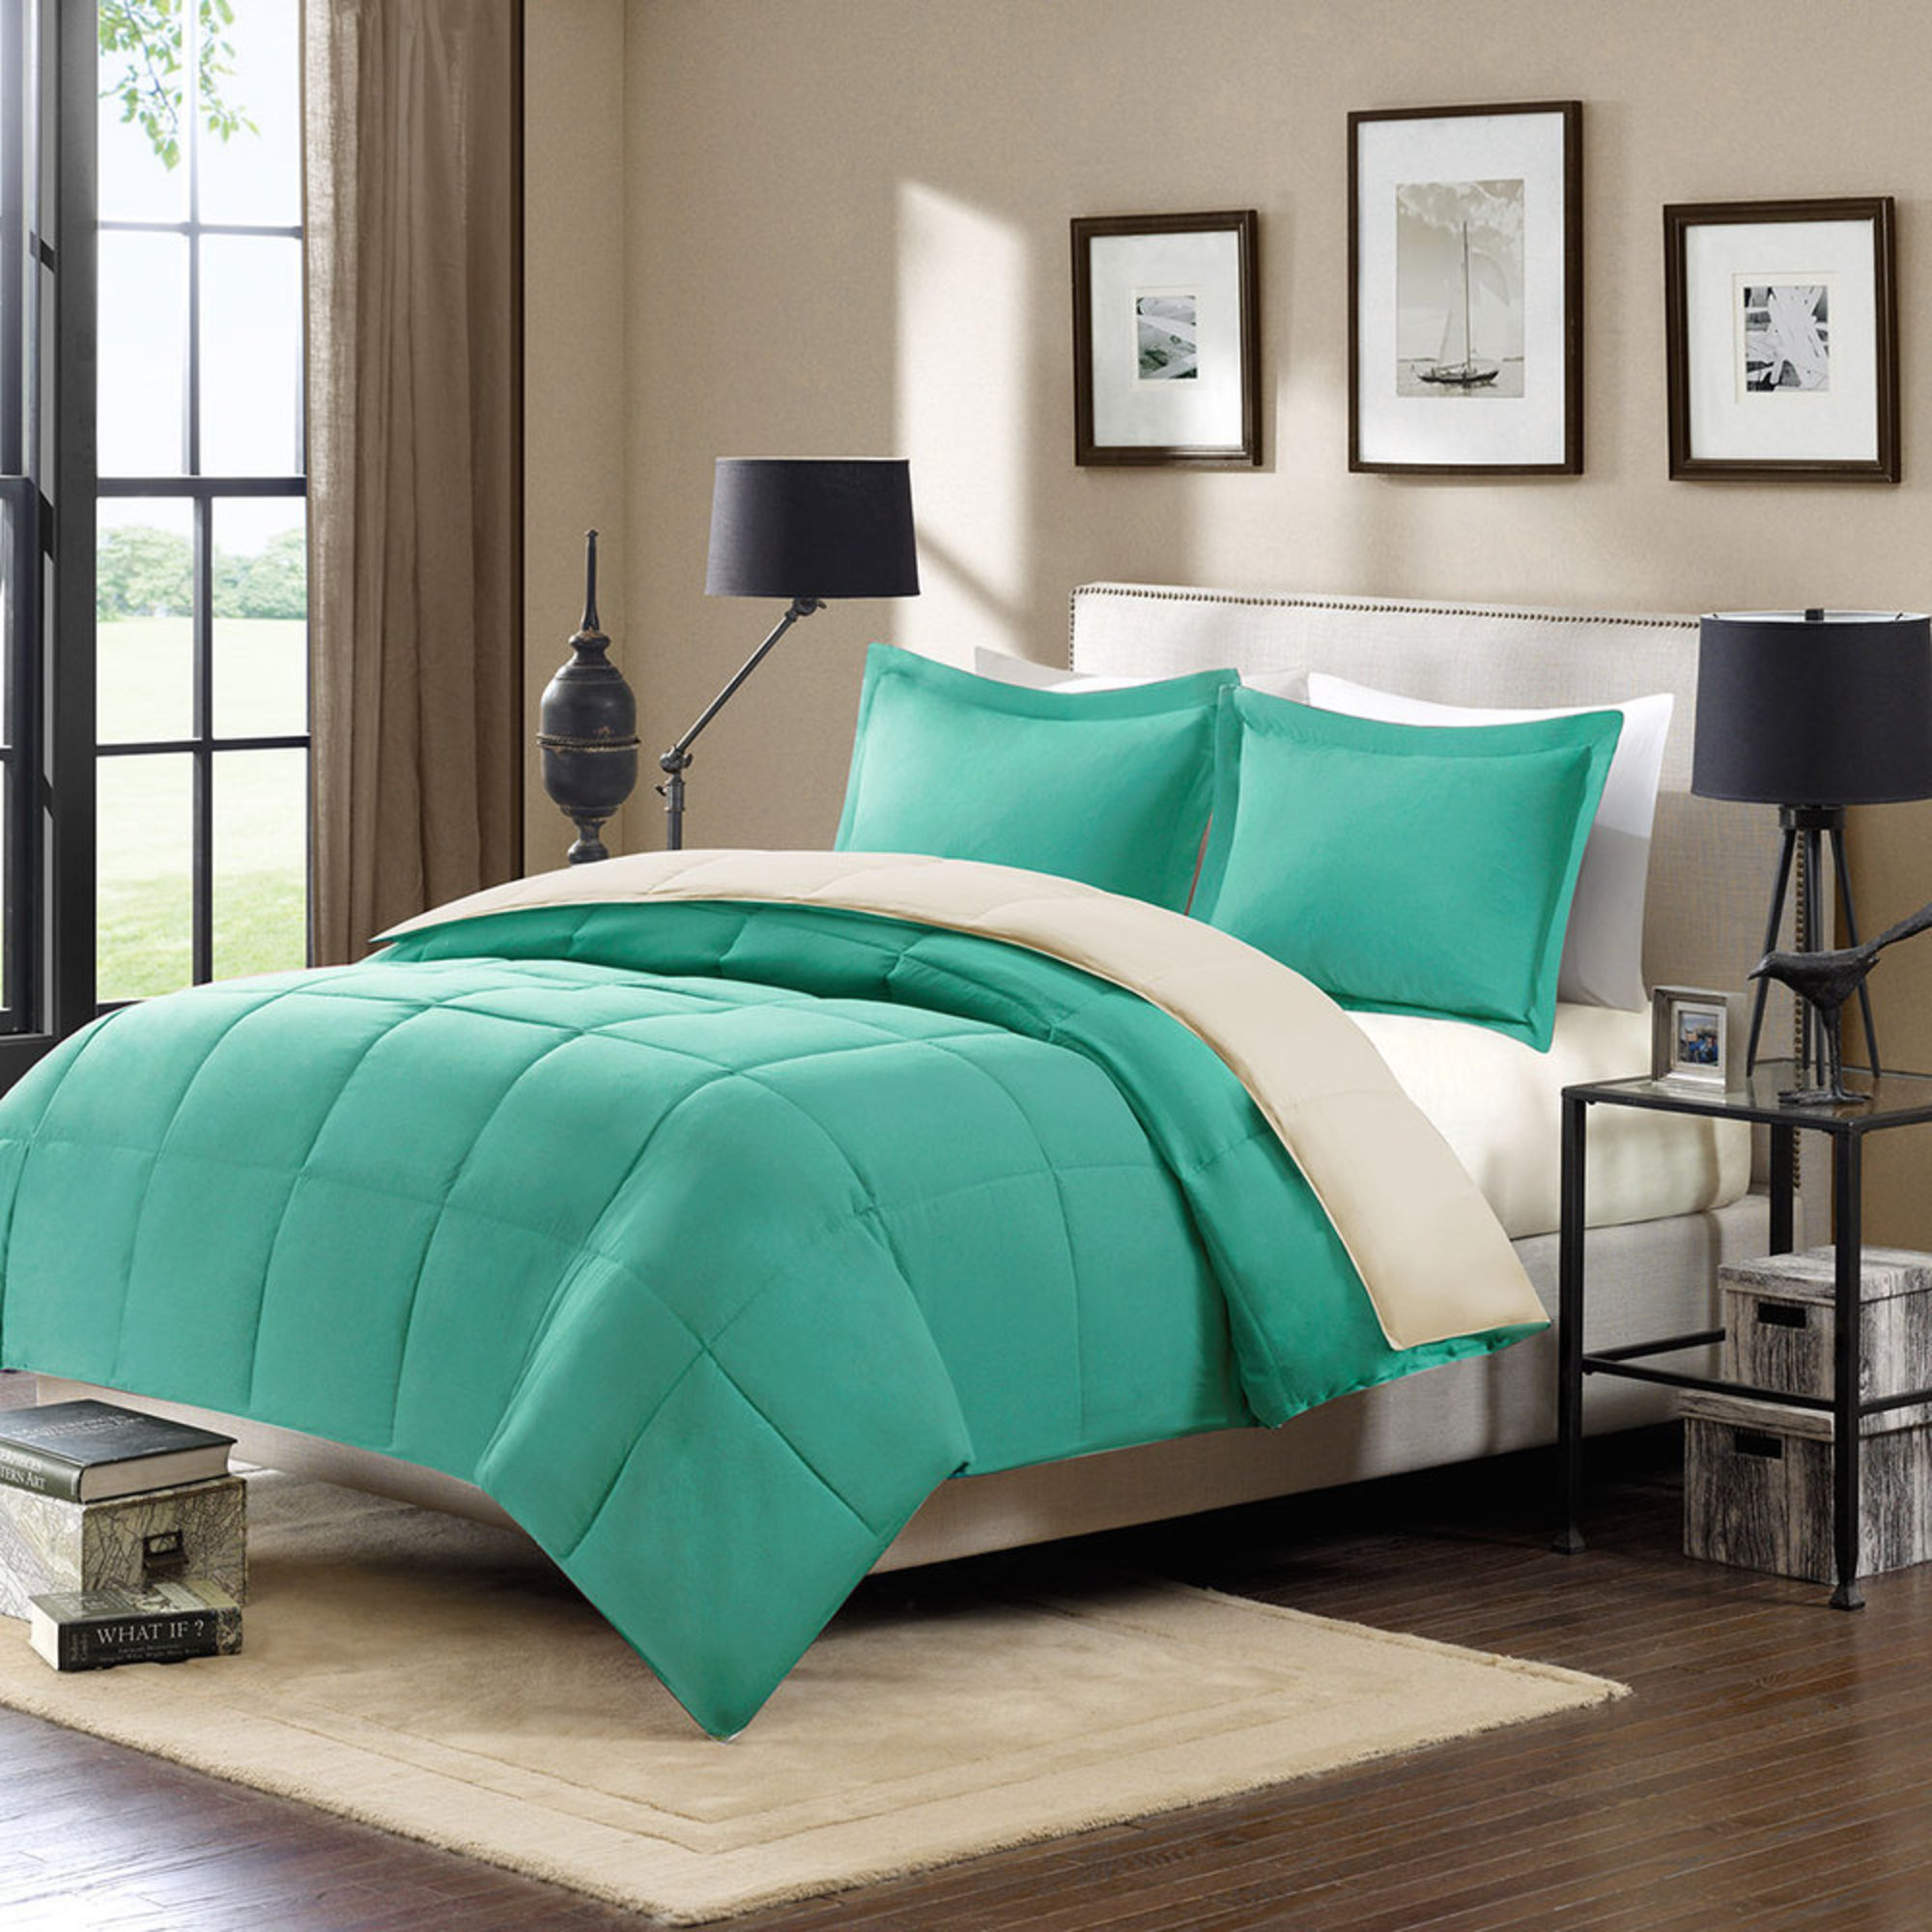 28 home design mini stripe down alternative queen comforter home design mini stripe down alternative queen comforter harbor home down alternative reversible mini set teal